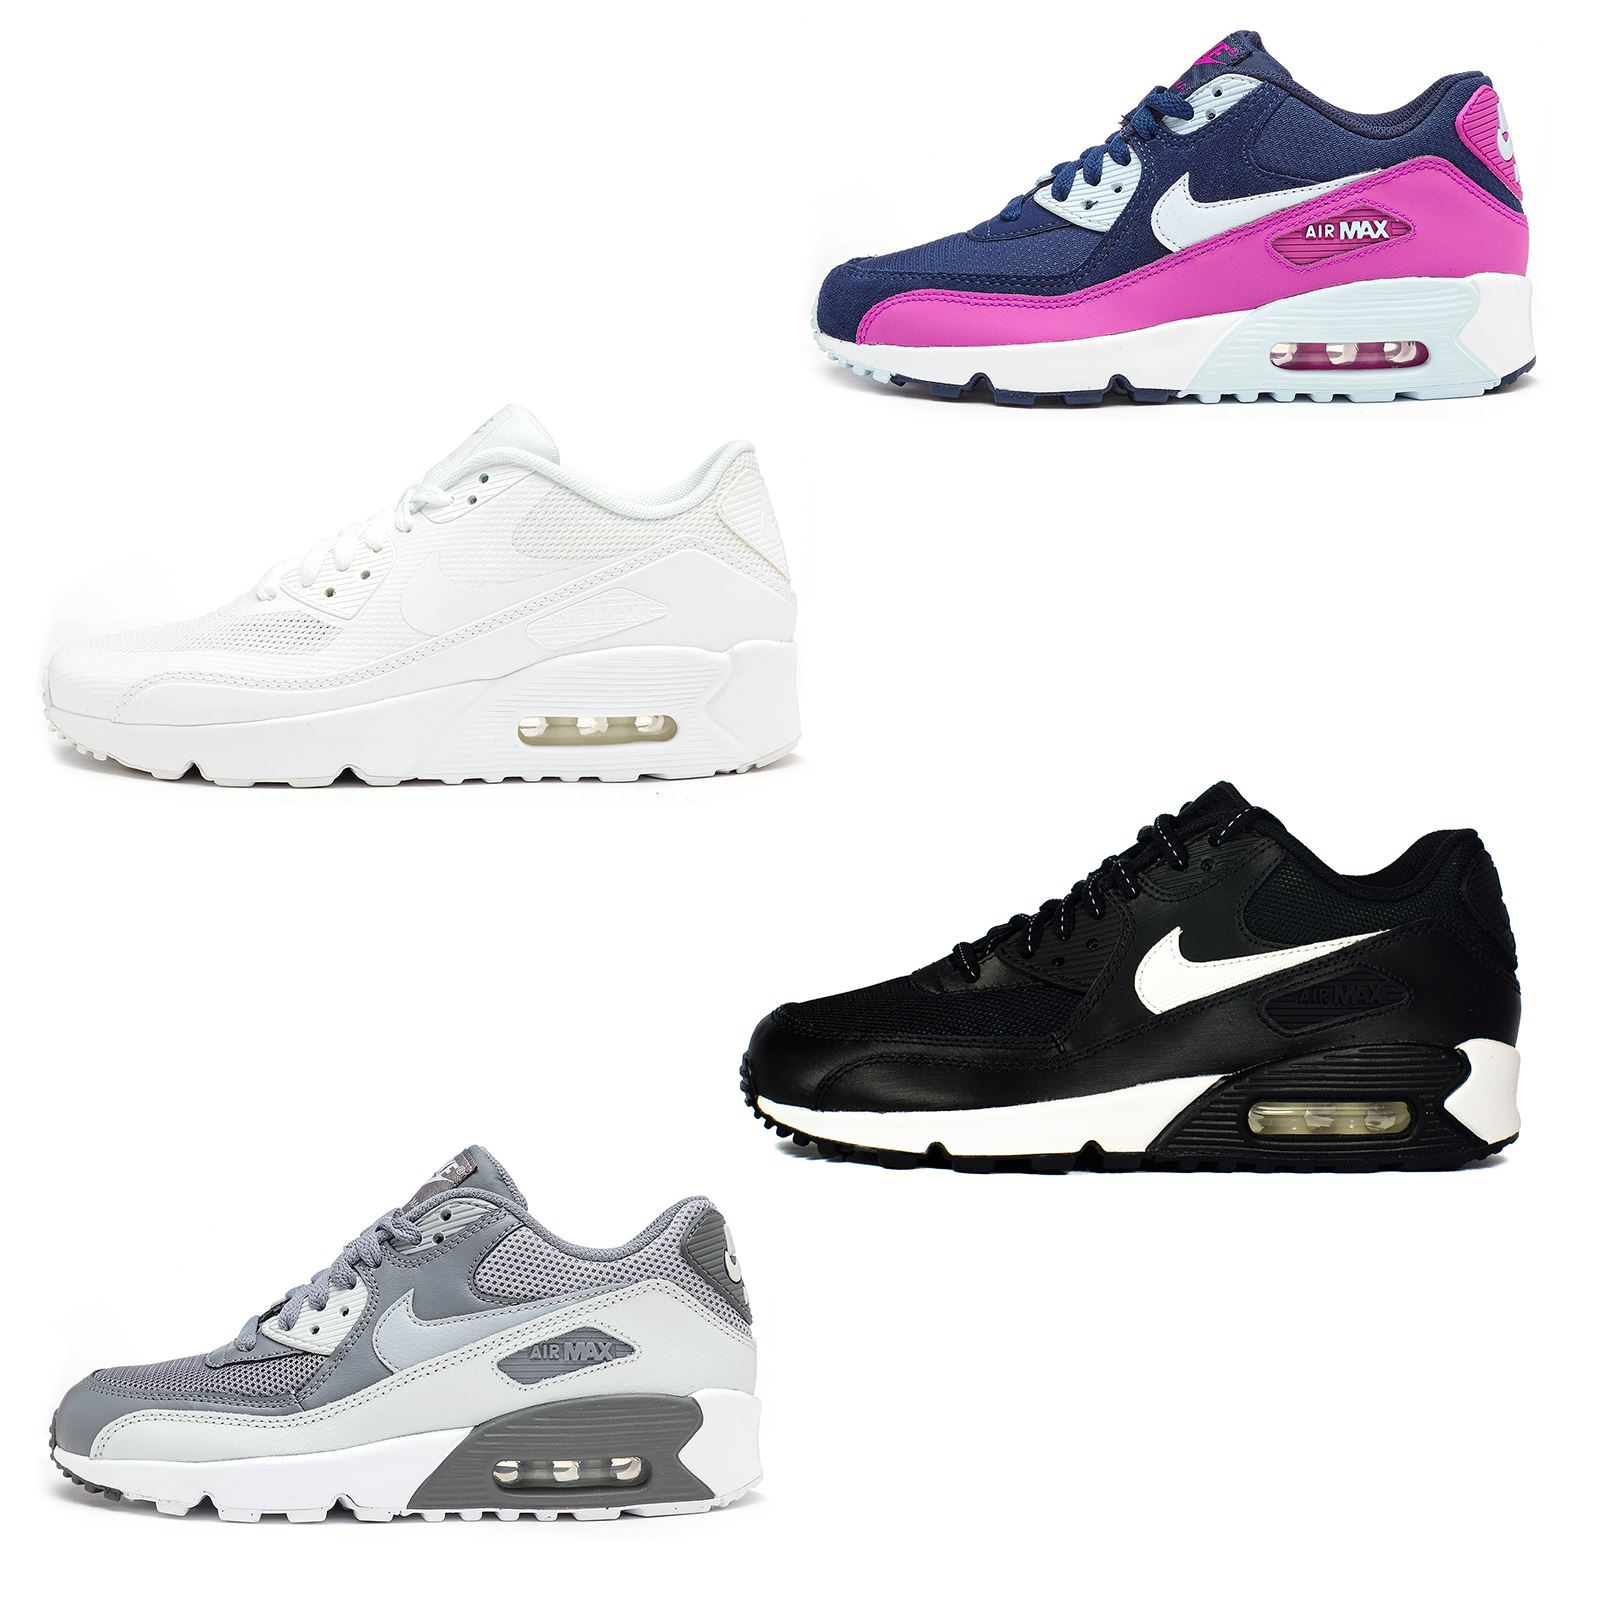 Details about Nike Air Max 90 & Zero GS Fashion Leather Glow Mesh Trainers All Sizes